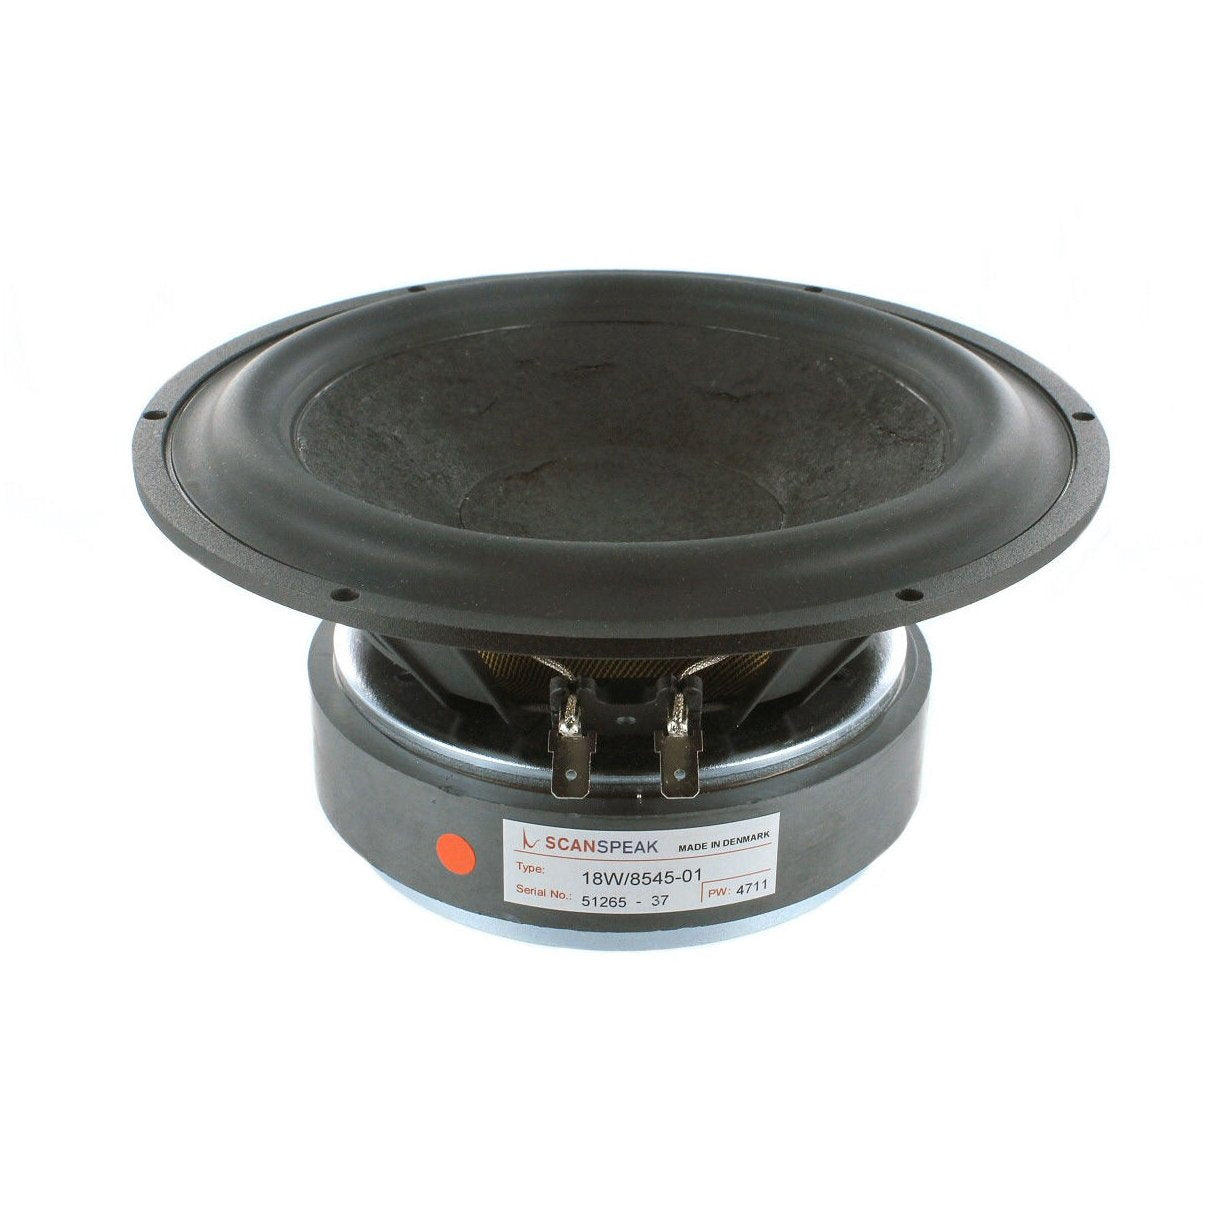 Scanspeak Classic 18W/8545-01 Midwoofer - Willys-Hifi Ltd